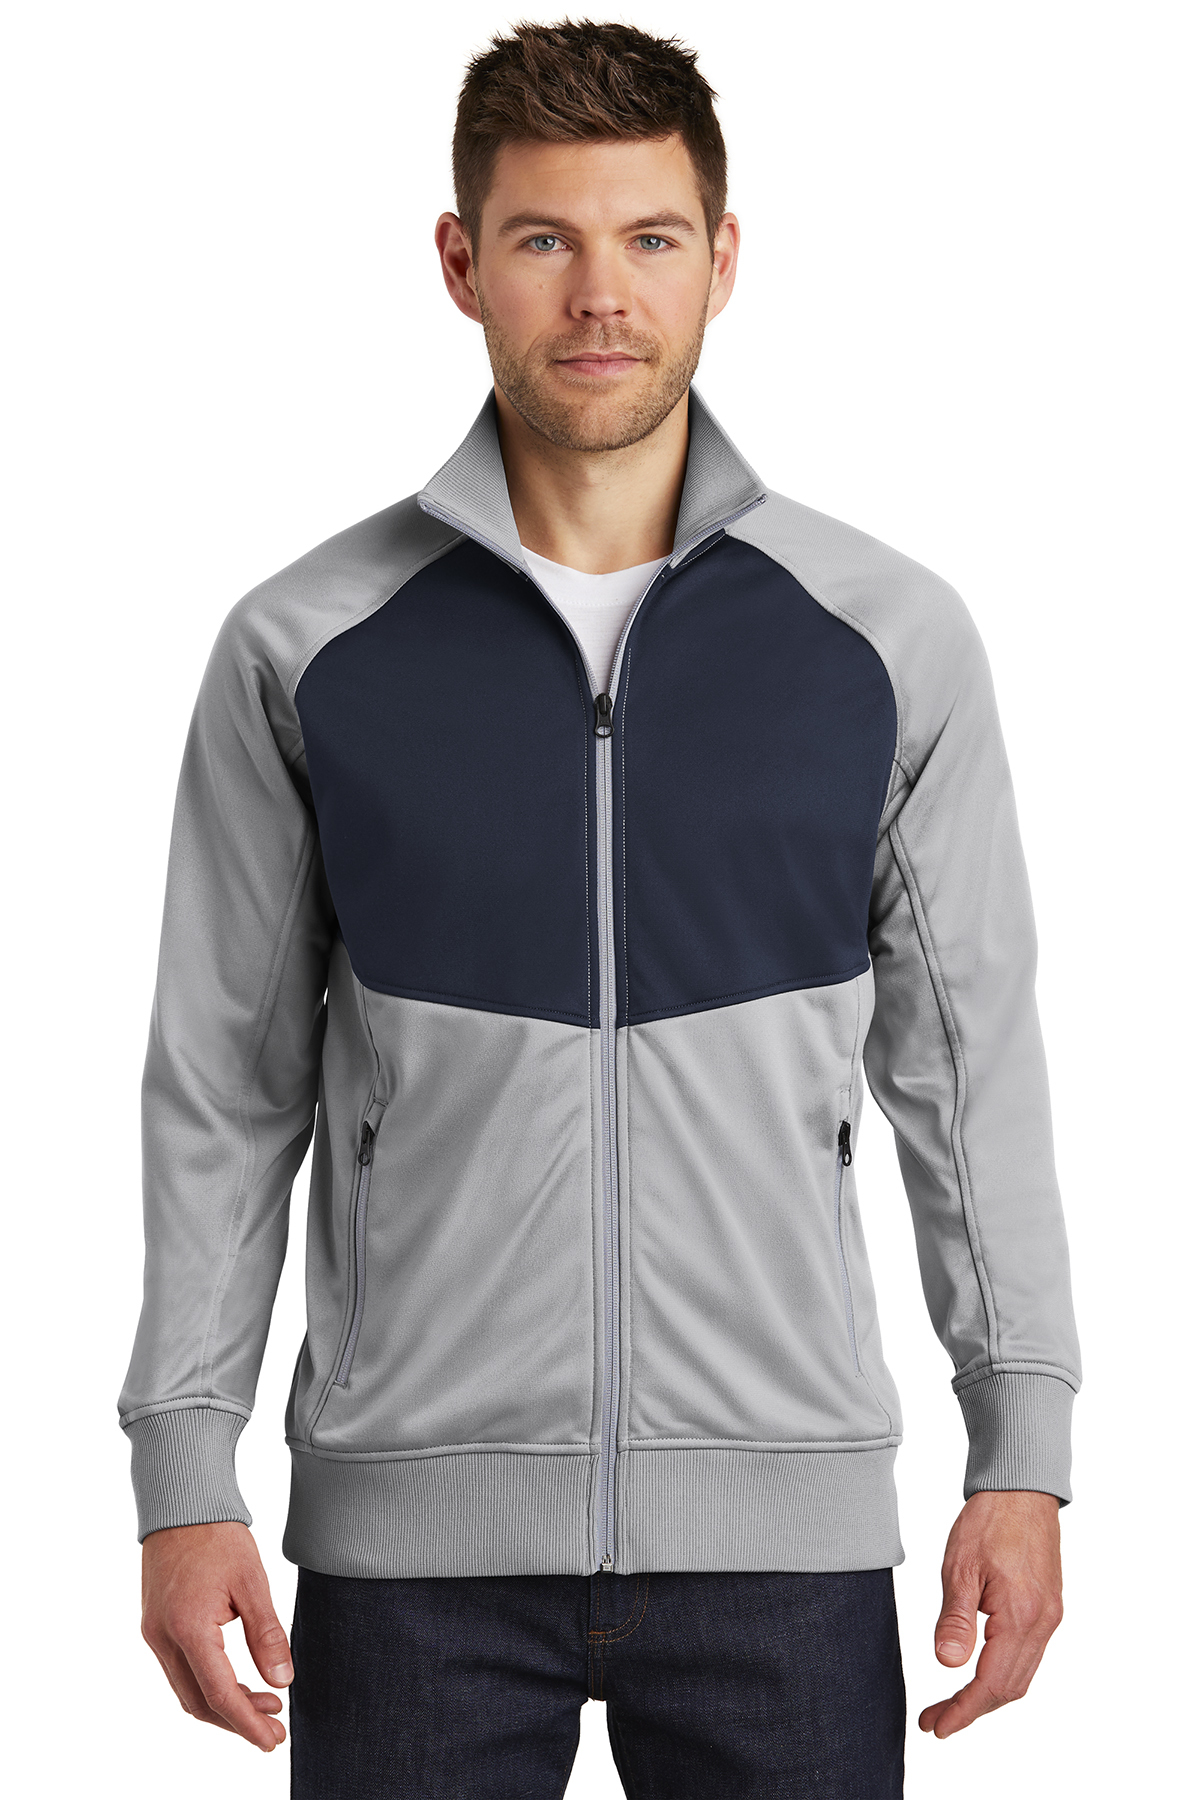 16419f43b815 The North Face ® Tech Full-Zip Fleece Jacket